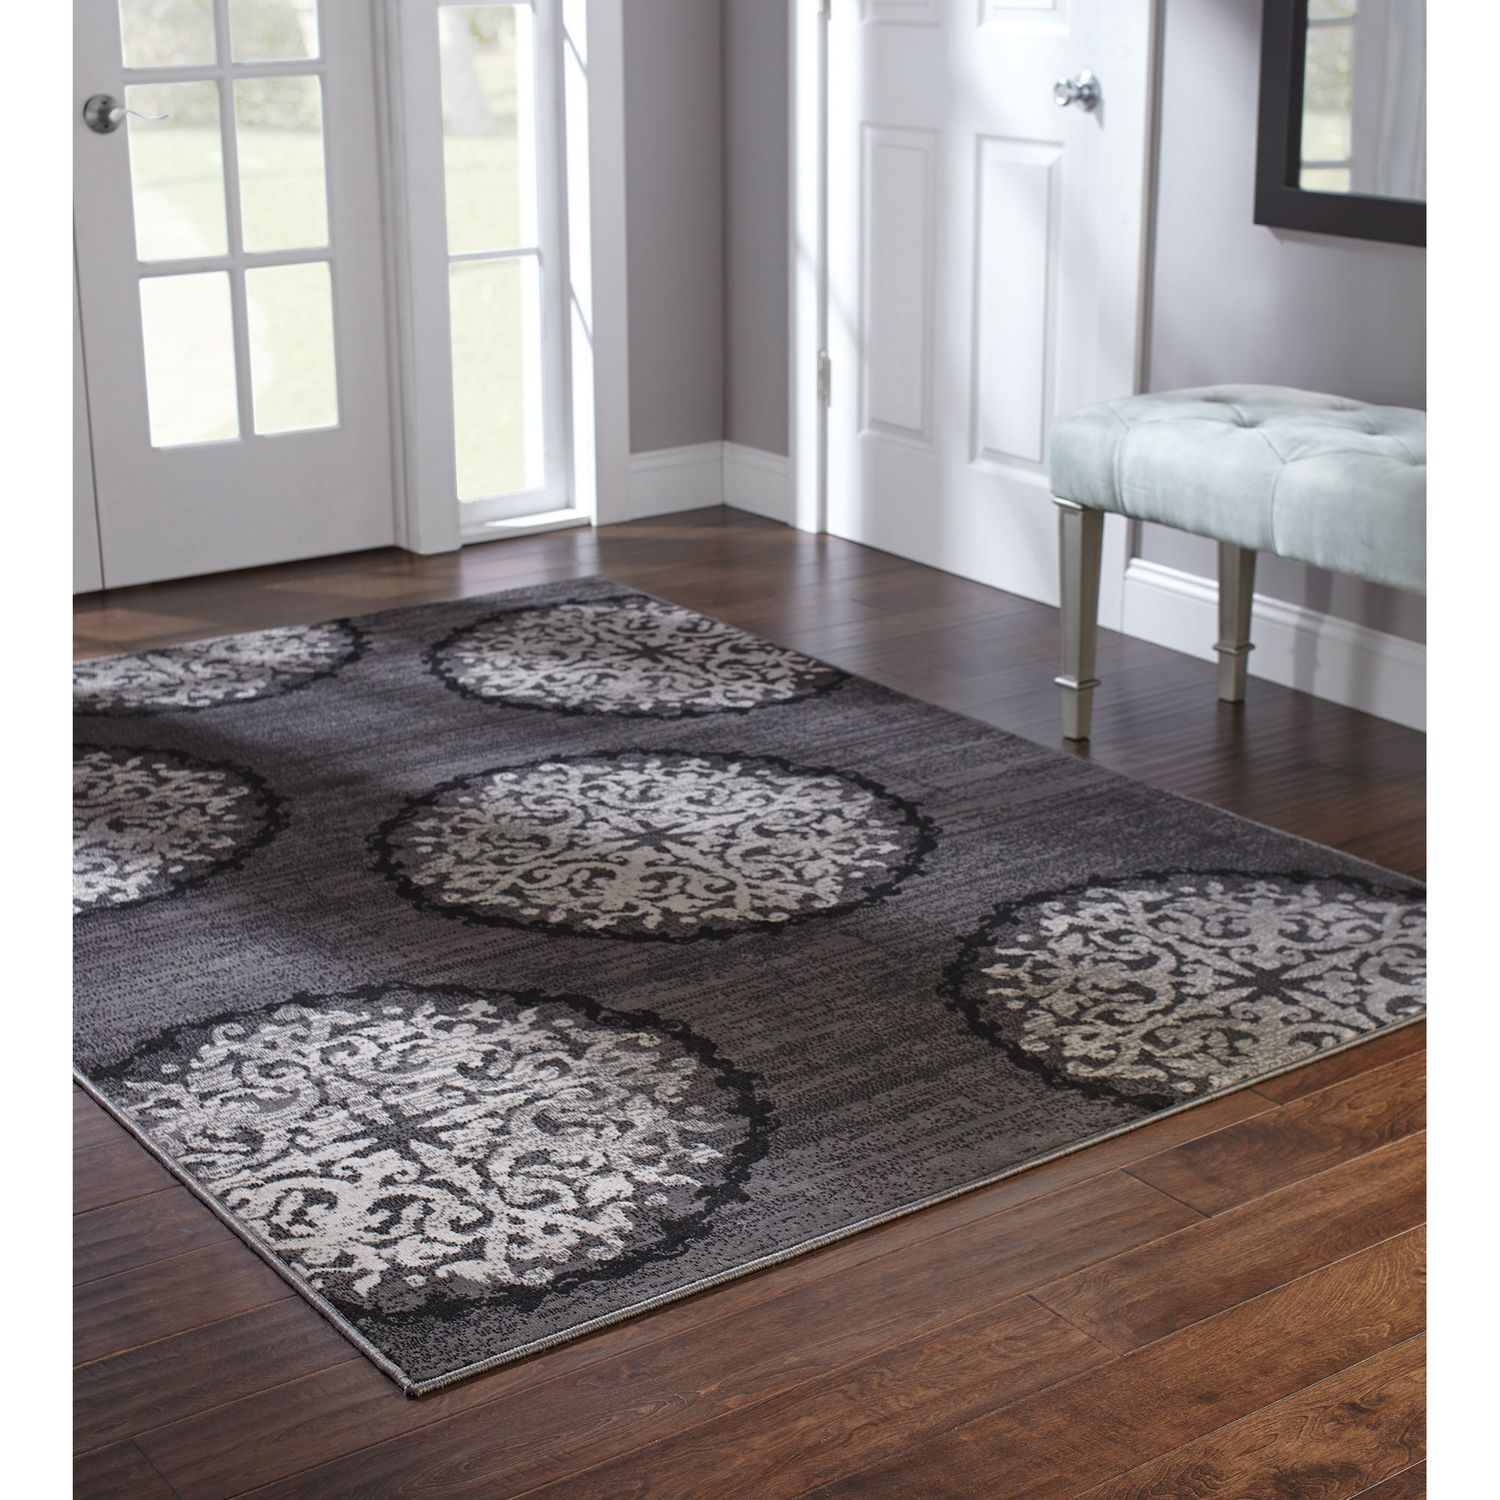 Home Trends Area Rug 5 Ft X 8